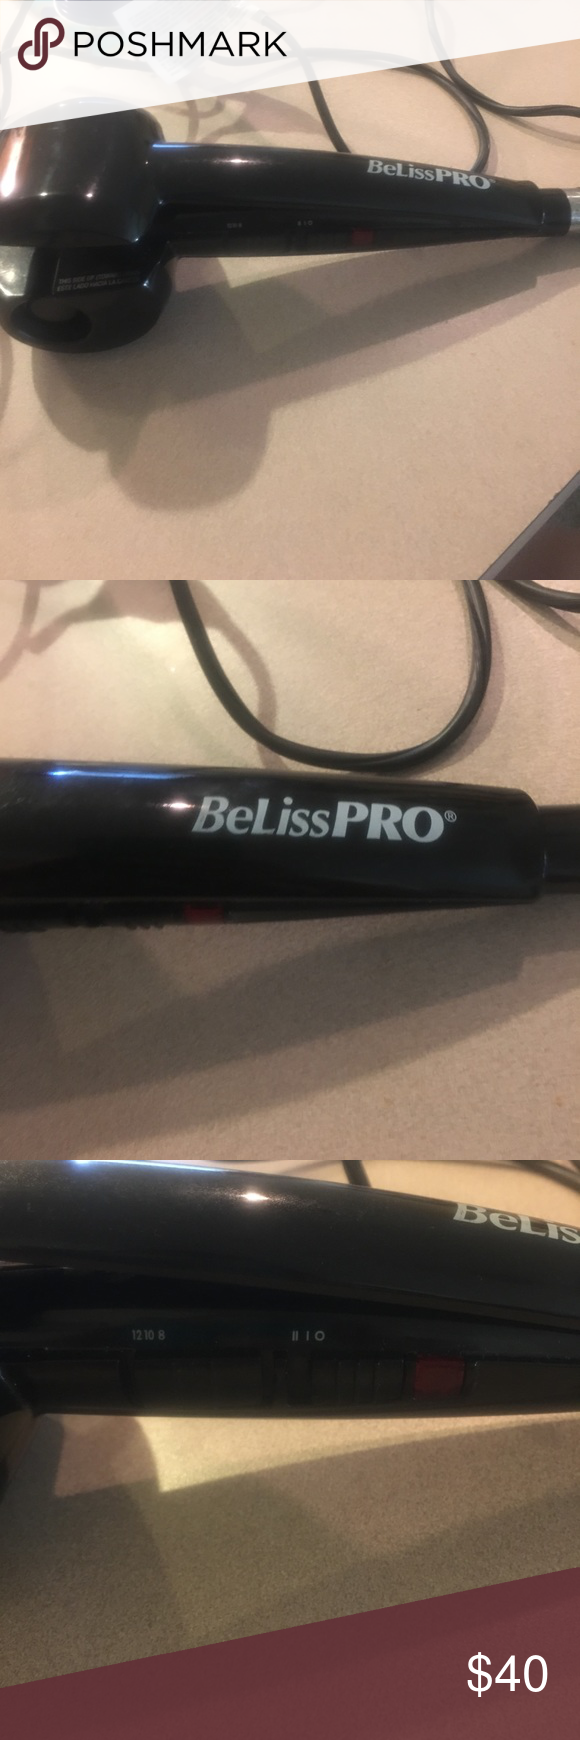 Beliss Pro Hair Curler The Conair Infiniti Curl Secret Curling Iron Makes It Easy To